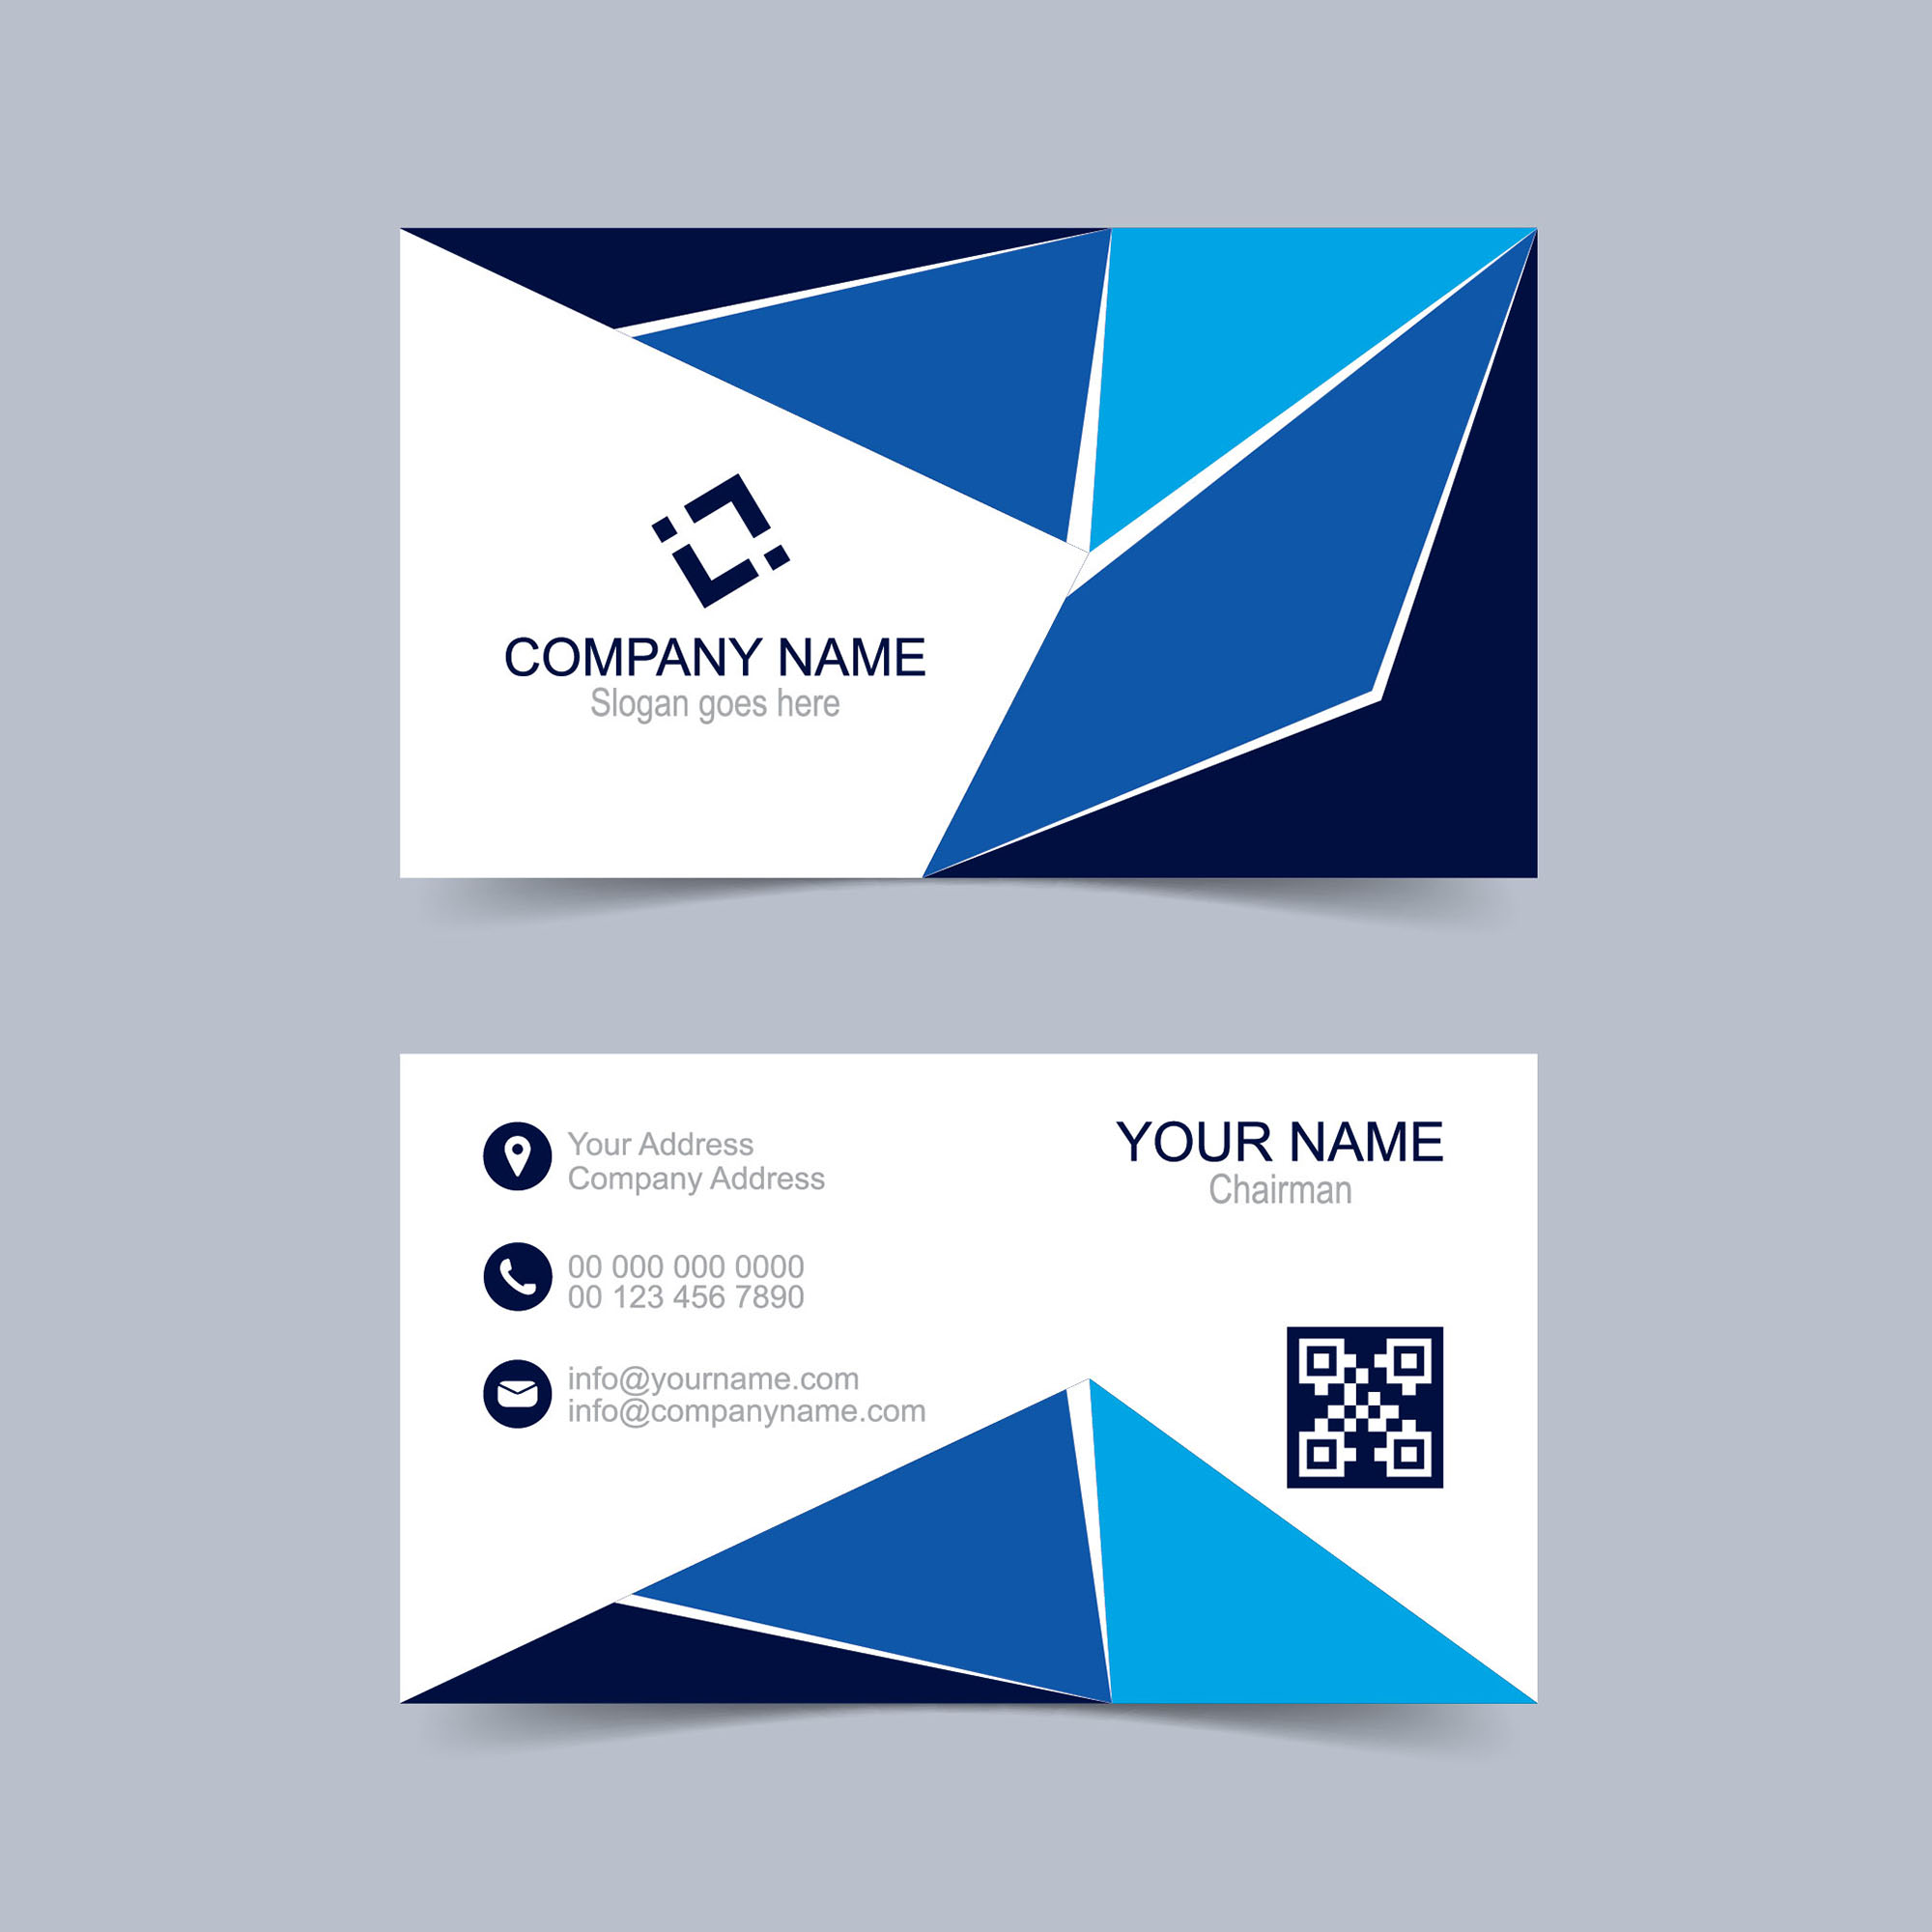 Creative Business Card Design Free Download   Wisxi.com